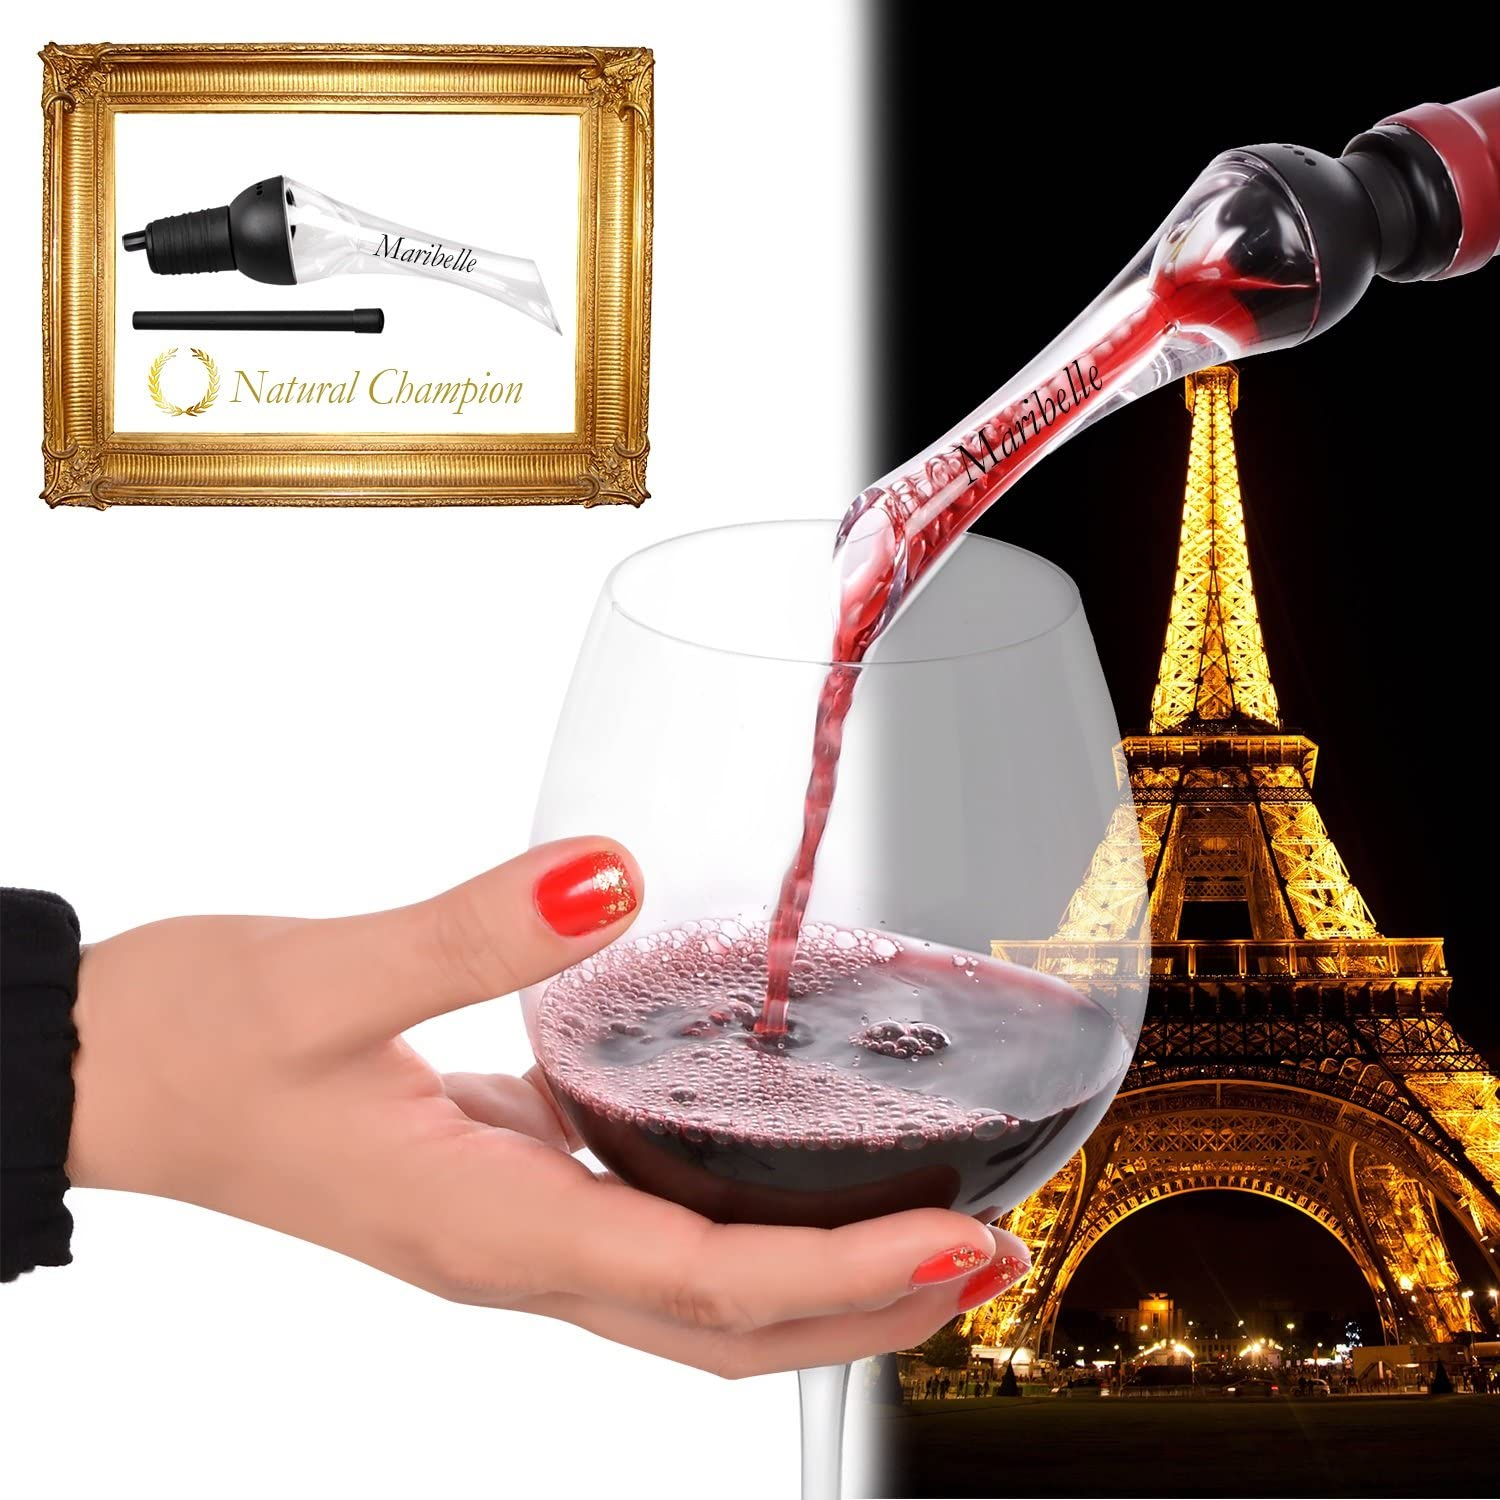 LIFE CHANGER: The Wine Aerator Pourer Max 73% OFF Spouts Best Product the Quali That